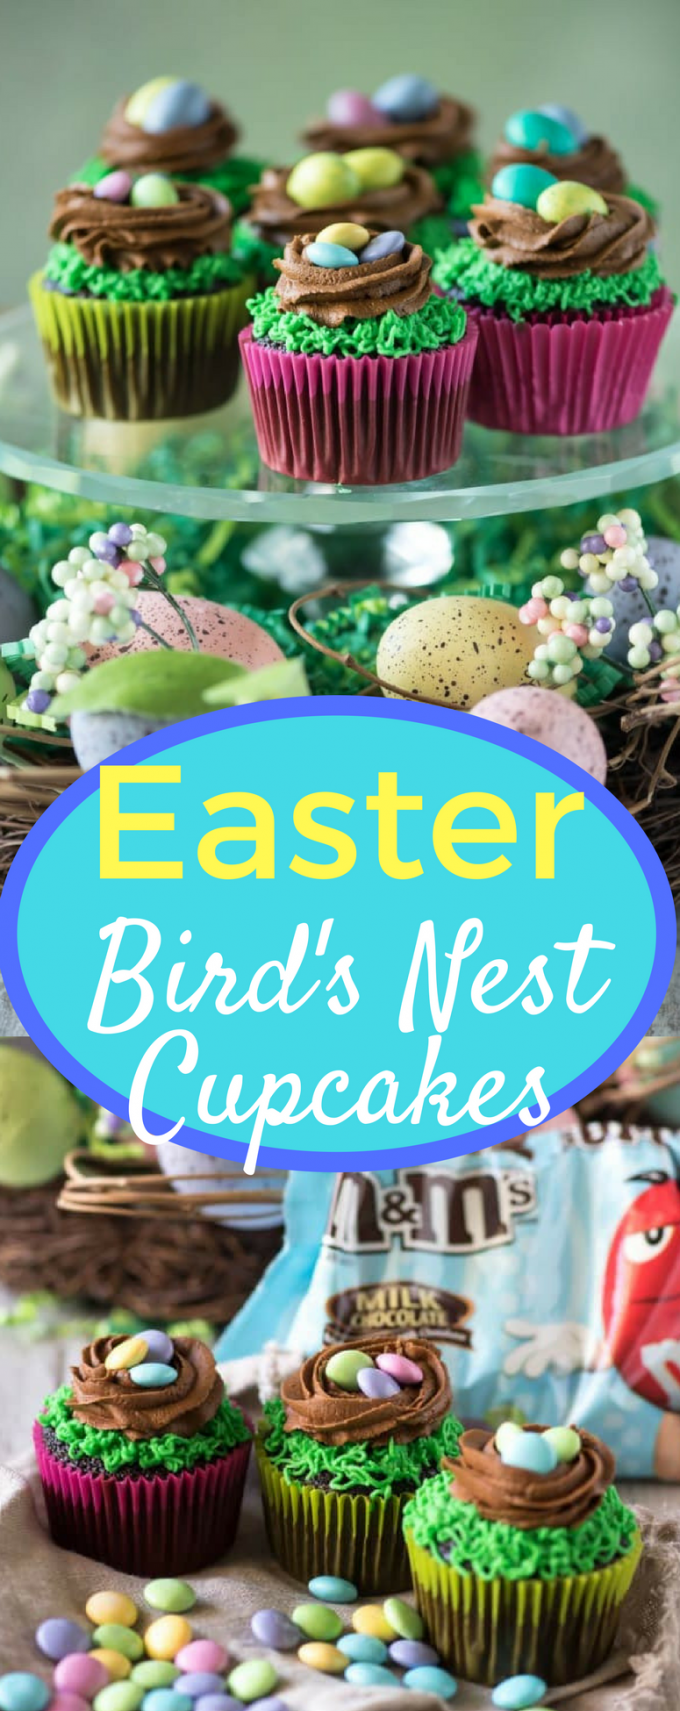 If you're looking for dessert ideas for Easter, this easy Bird's Nest Cupcakes recipe is it! The decoration is simple enough for kids to help with, yet elegant enough to put on a stand! #eastercupcakes #easterdessertideas #birdsnestcupcakes #easterbrunchideas #gogogogourmet